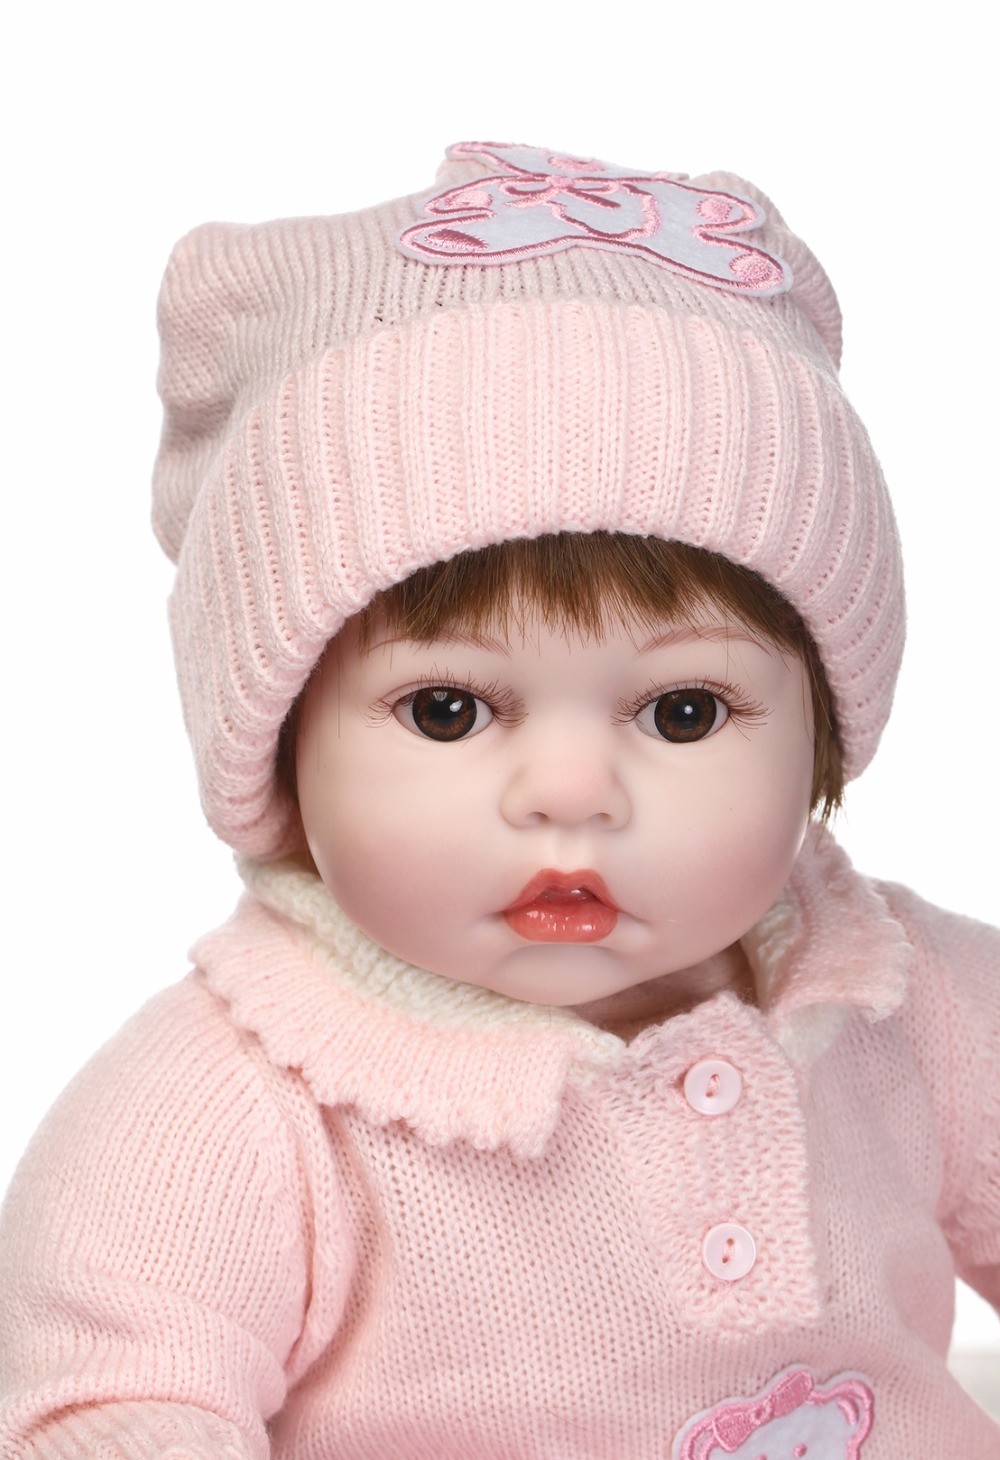 NPKCOLLECTION Beautiful reborn baby doll in Pink sweater vinyl silicone real soft touch gift for children on Birthday new fashion design reborn toddler doll rooted hair soft silicone vinyl real gentle touch 28inches fashion gift for birthday